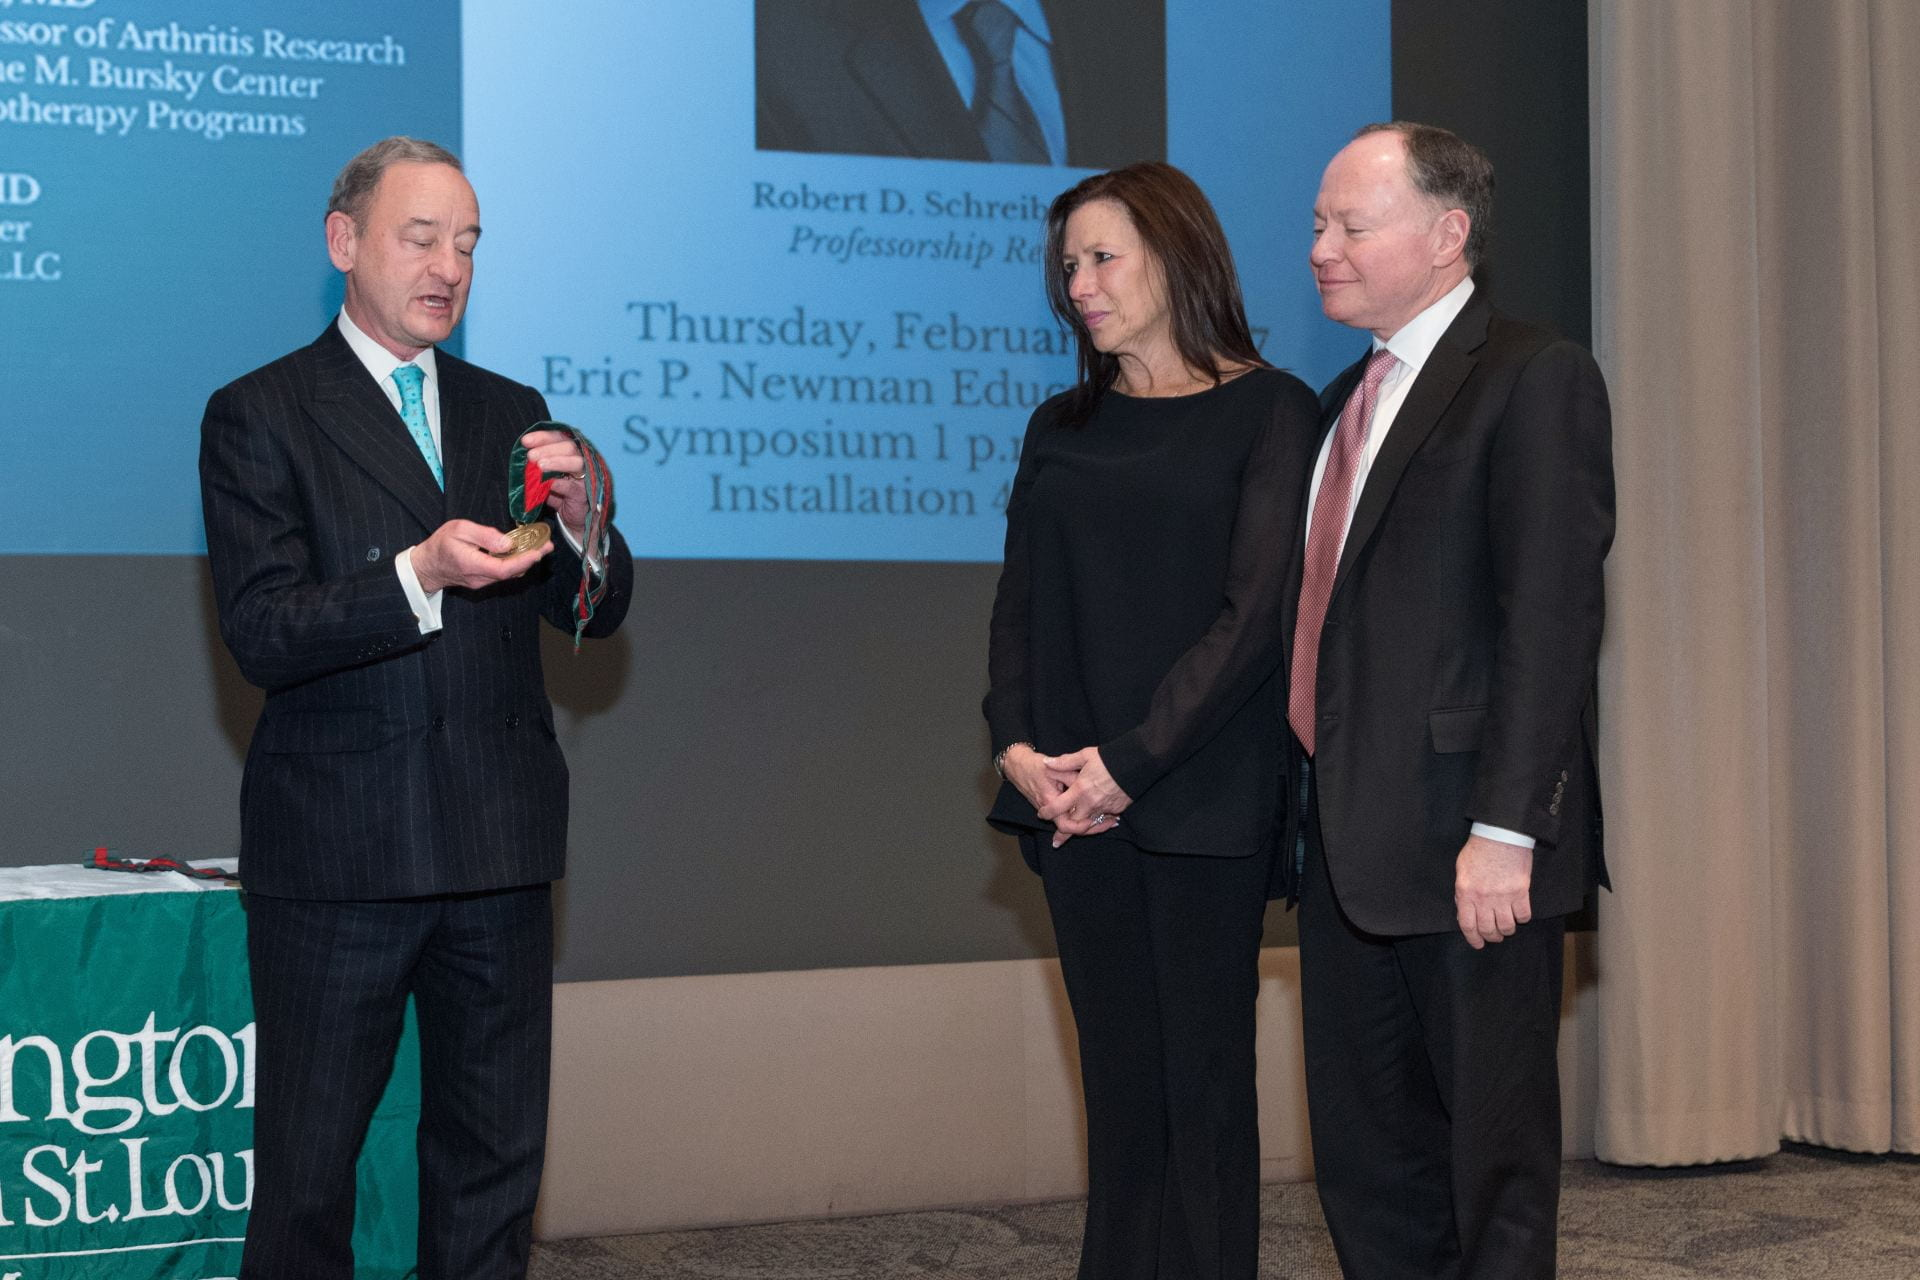 Chancellor Wrighton presents Mr. & Mrs. Bursky with their medallions during the Andrew M. and Jane M. Bursky Distinguished Professorship Installation Ceremony.